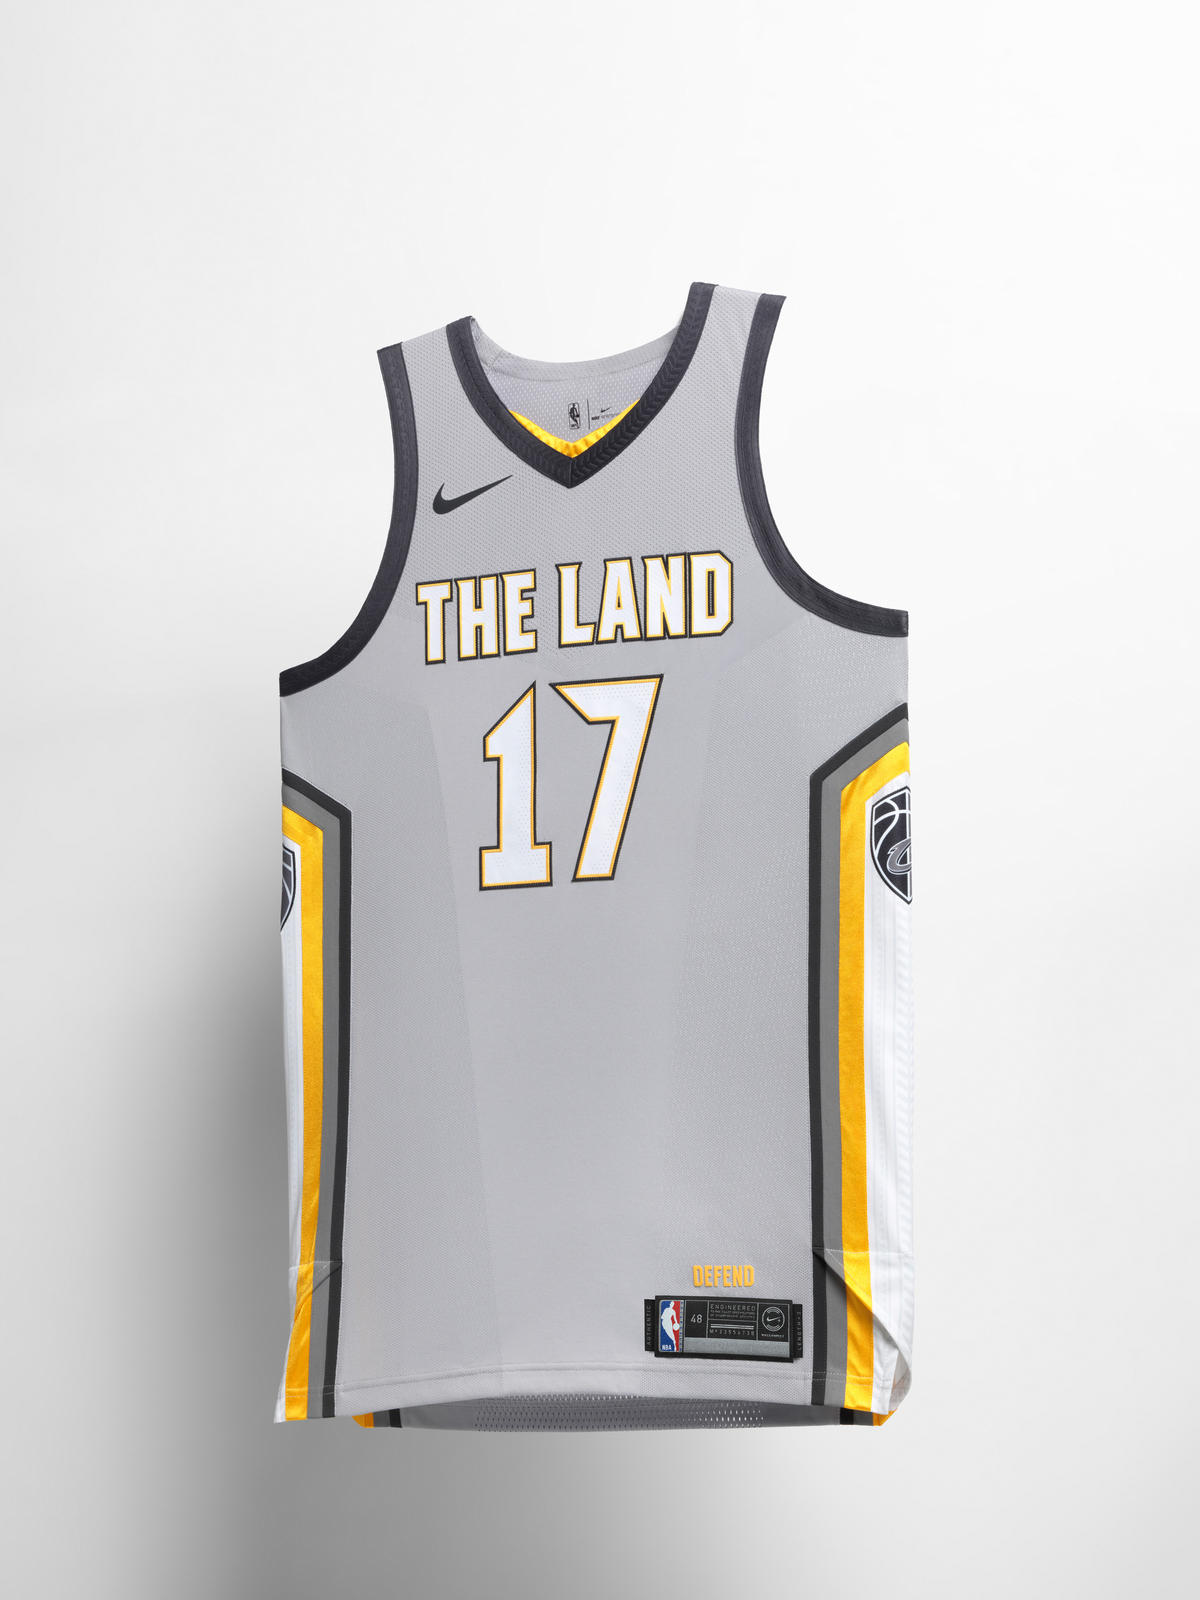 38ffe1f13 NBA City Edition jerseys  Photos of the final new Nike jersey